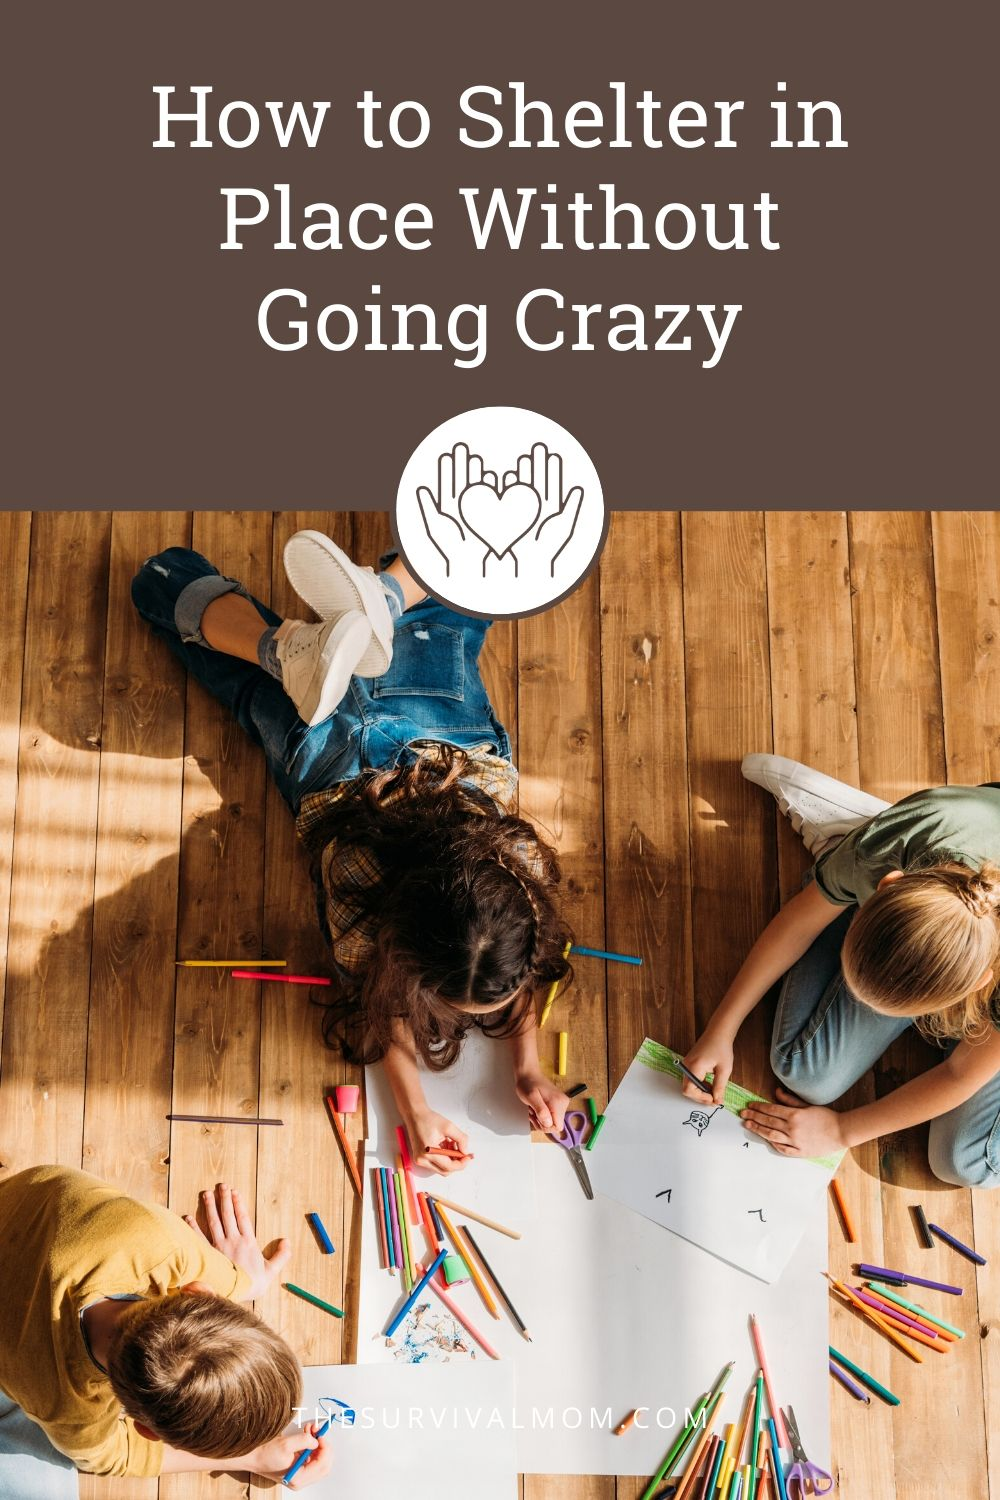 How to Shelter in Place Without Going Crazy via The Survival Mom